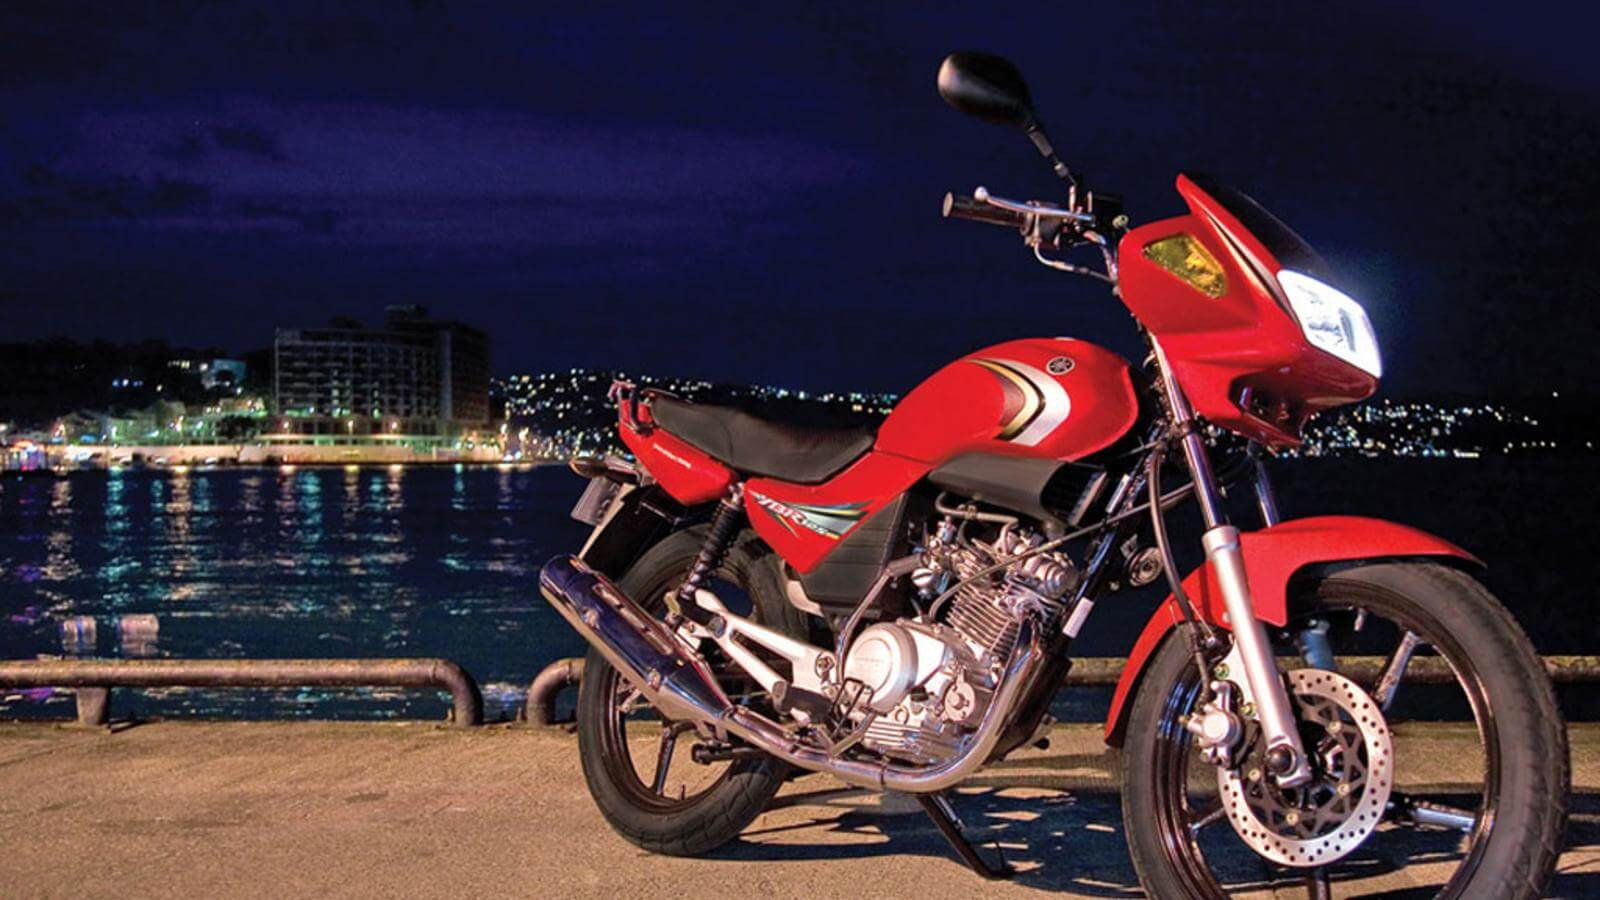 2011-Yamaha-YBR125-RU-Red-Spirit-Action-001.jpg